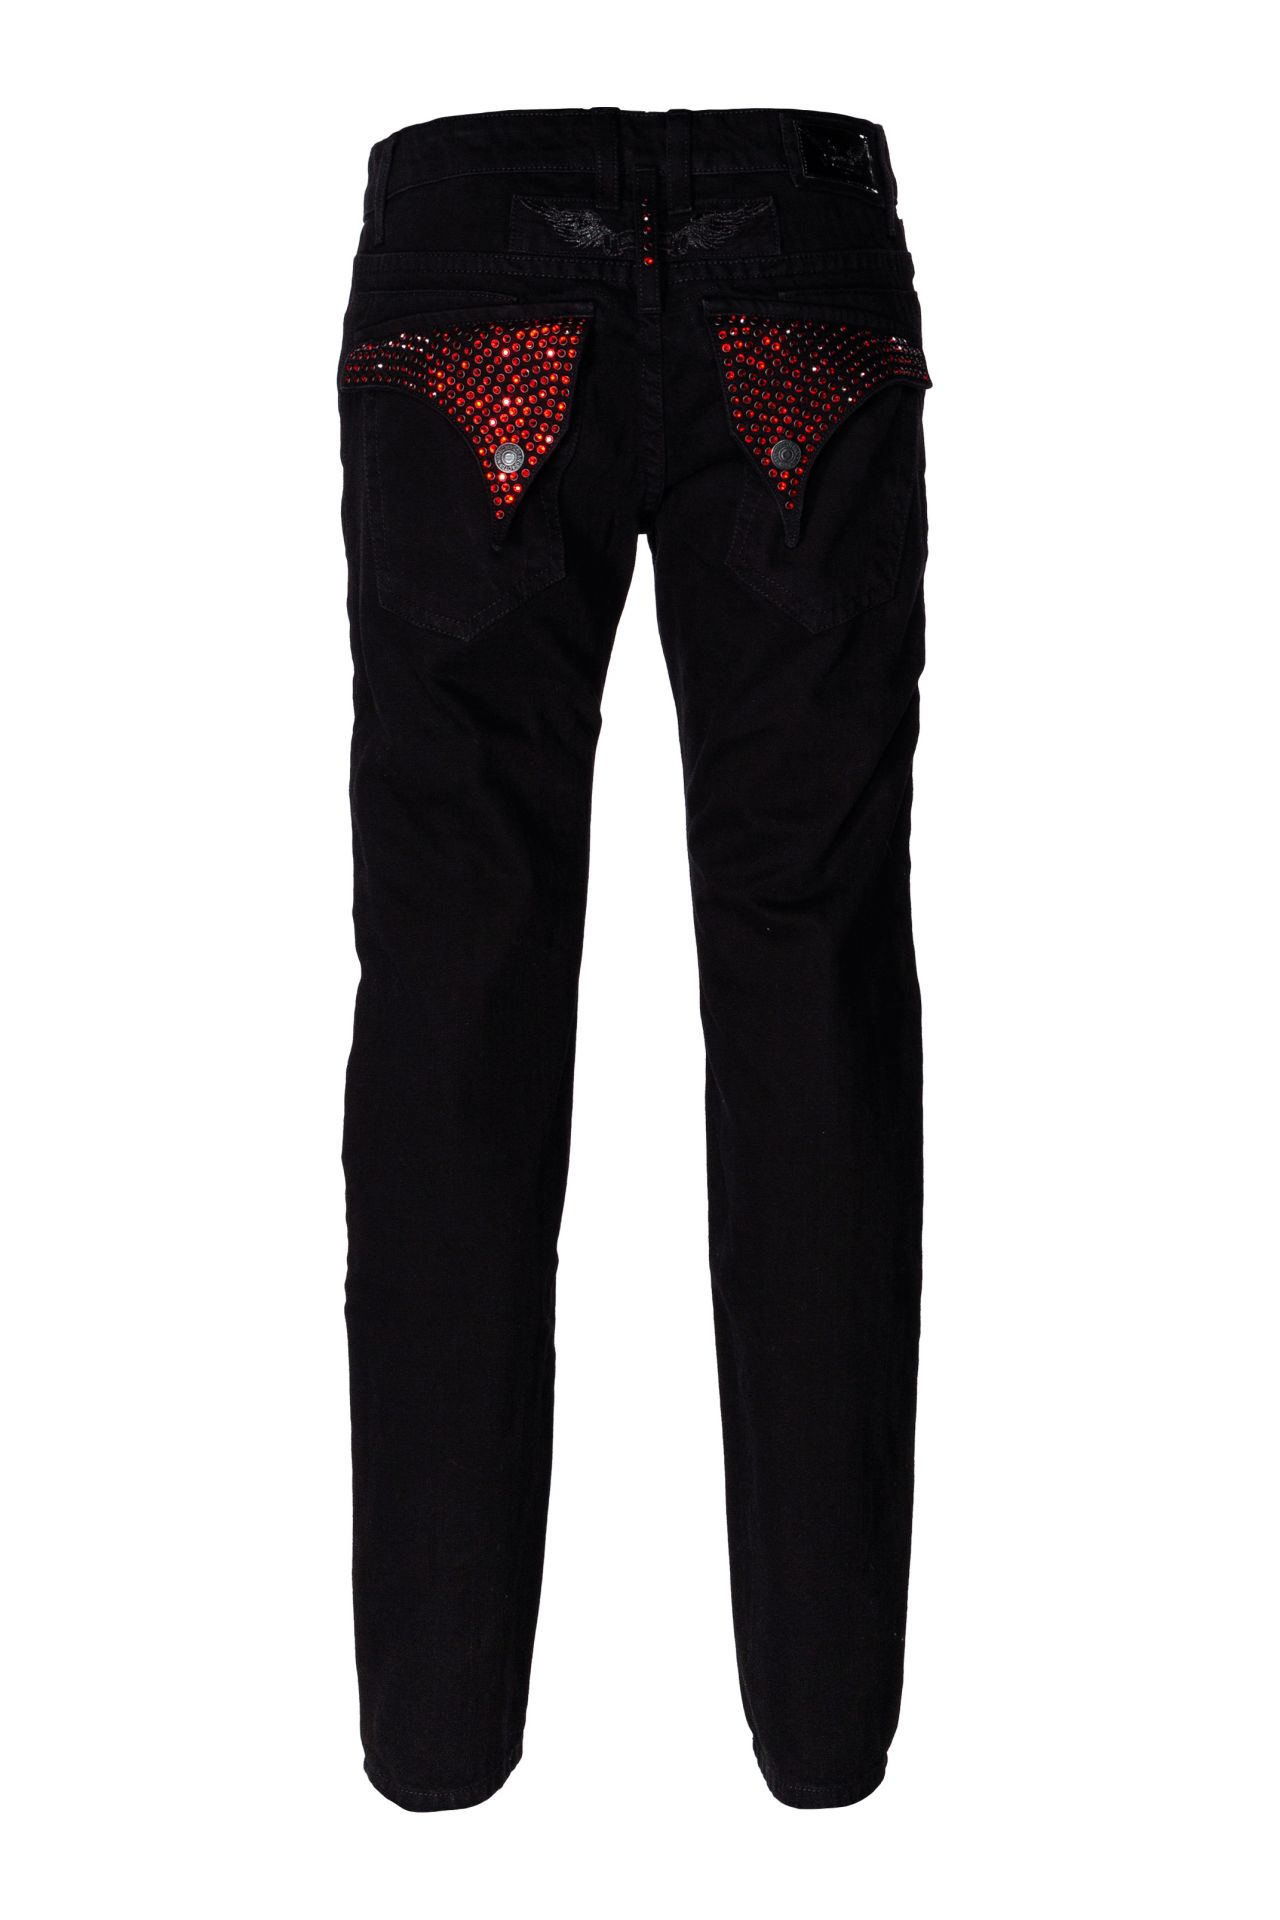 FLAP POCKET IN BLACK WITH RED SW